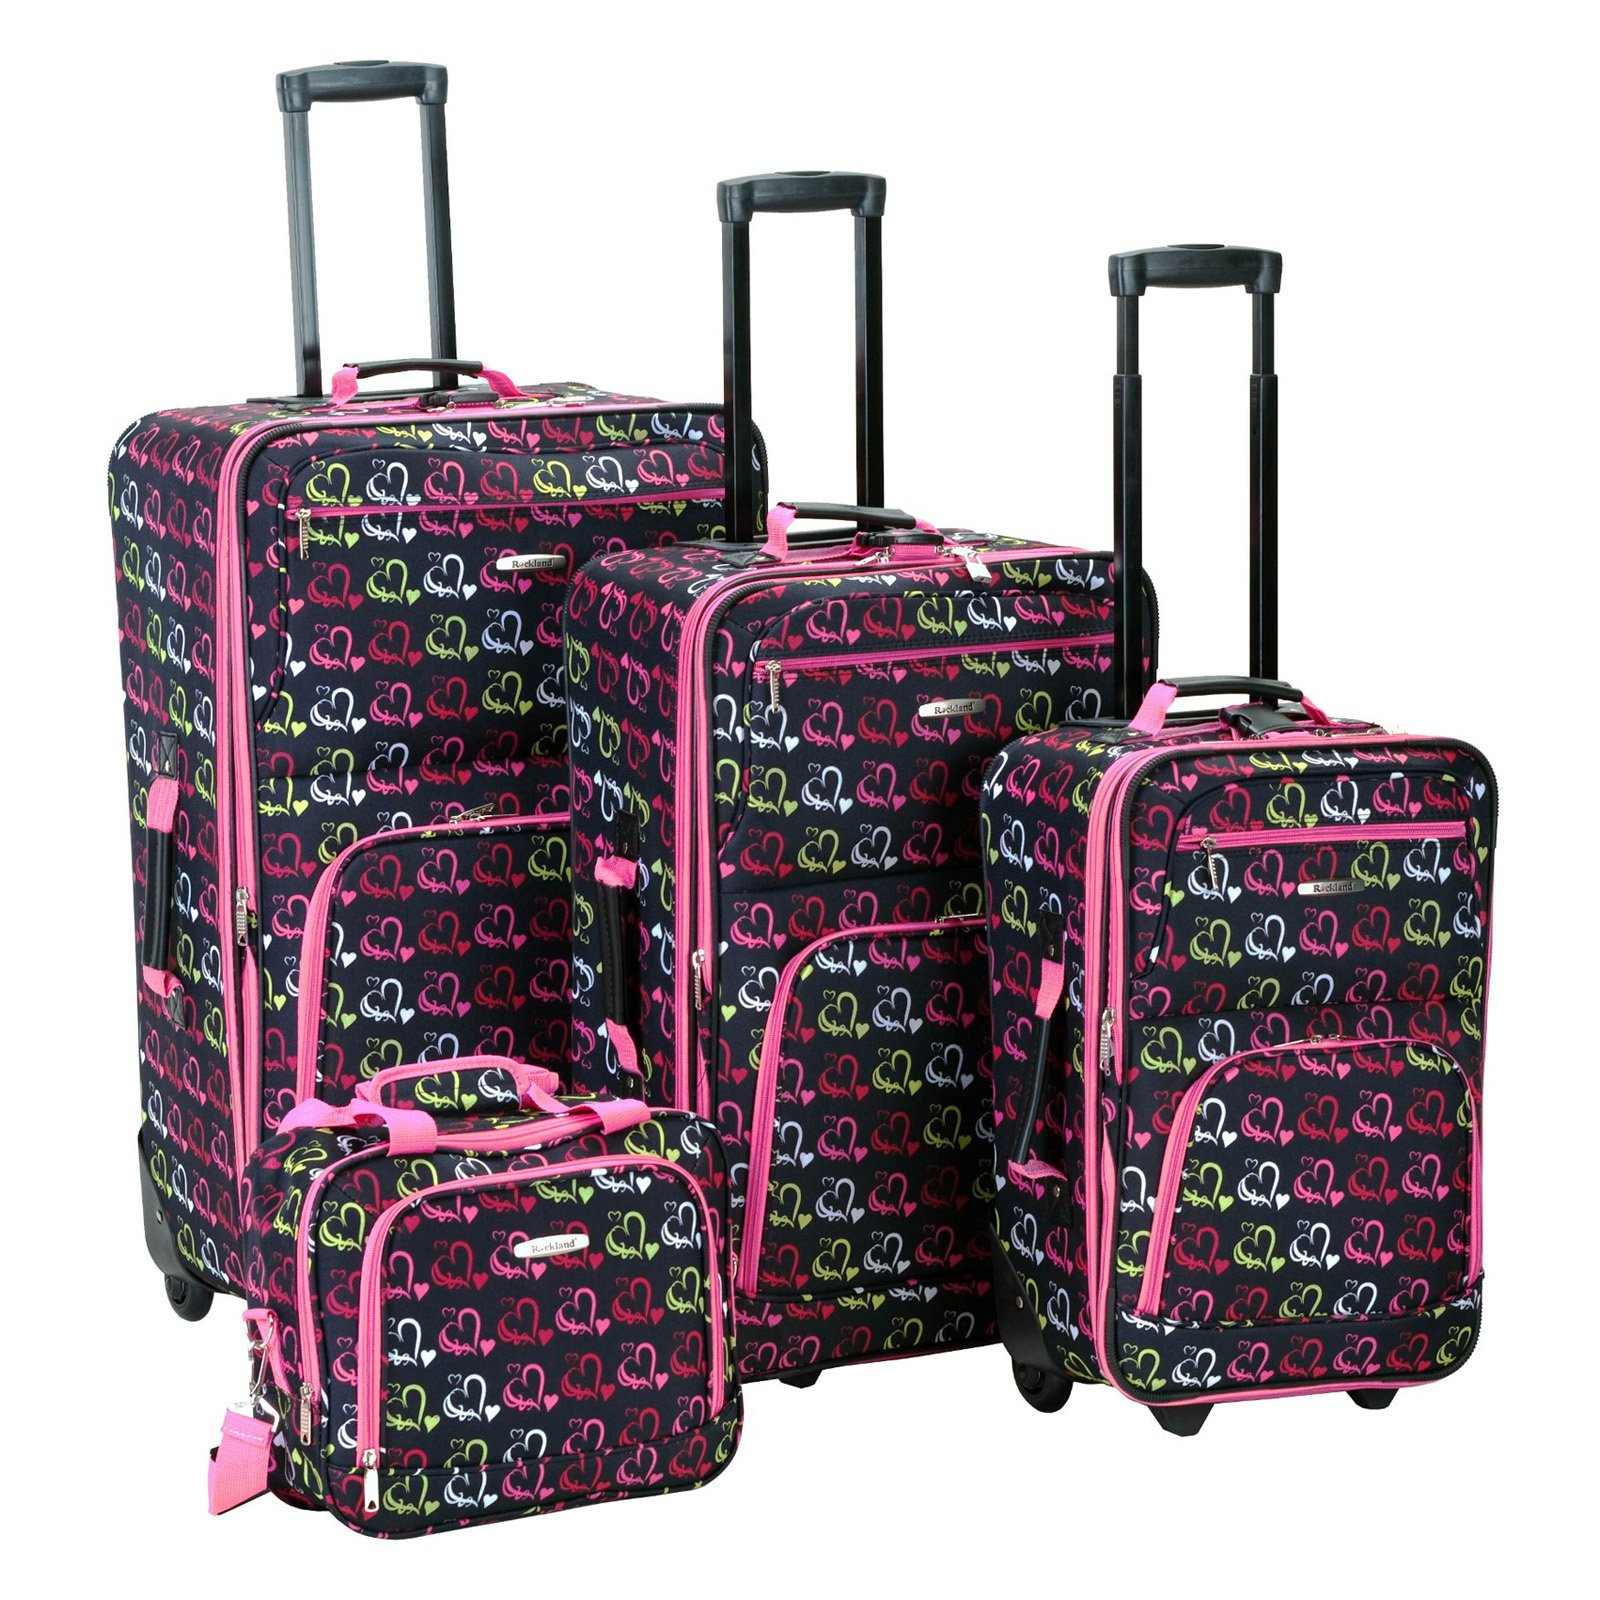 Rockland Luggage Fashion 4 Piece Expandable Luggage Set, Multiple ...